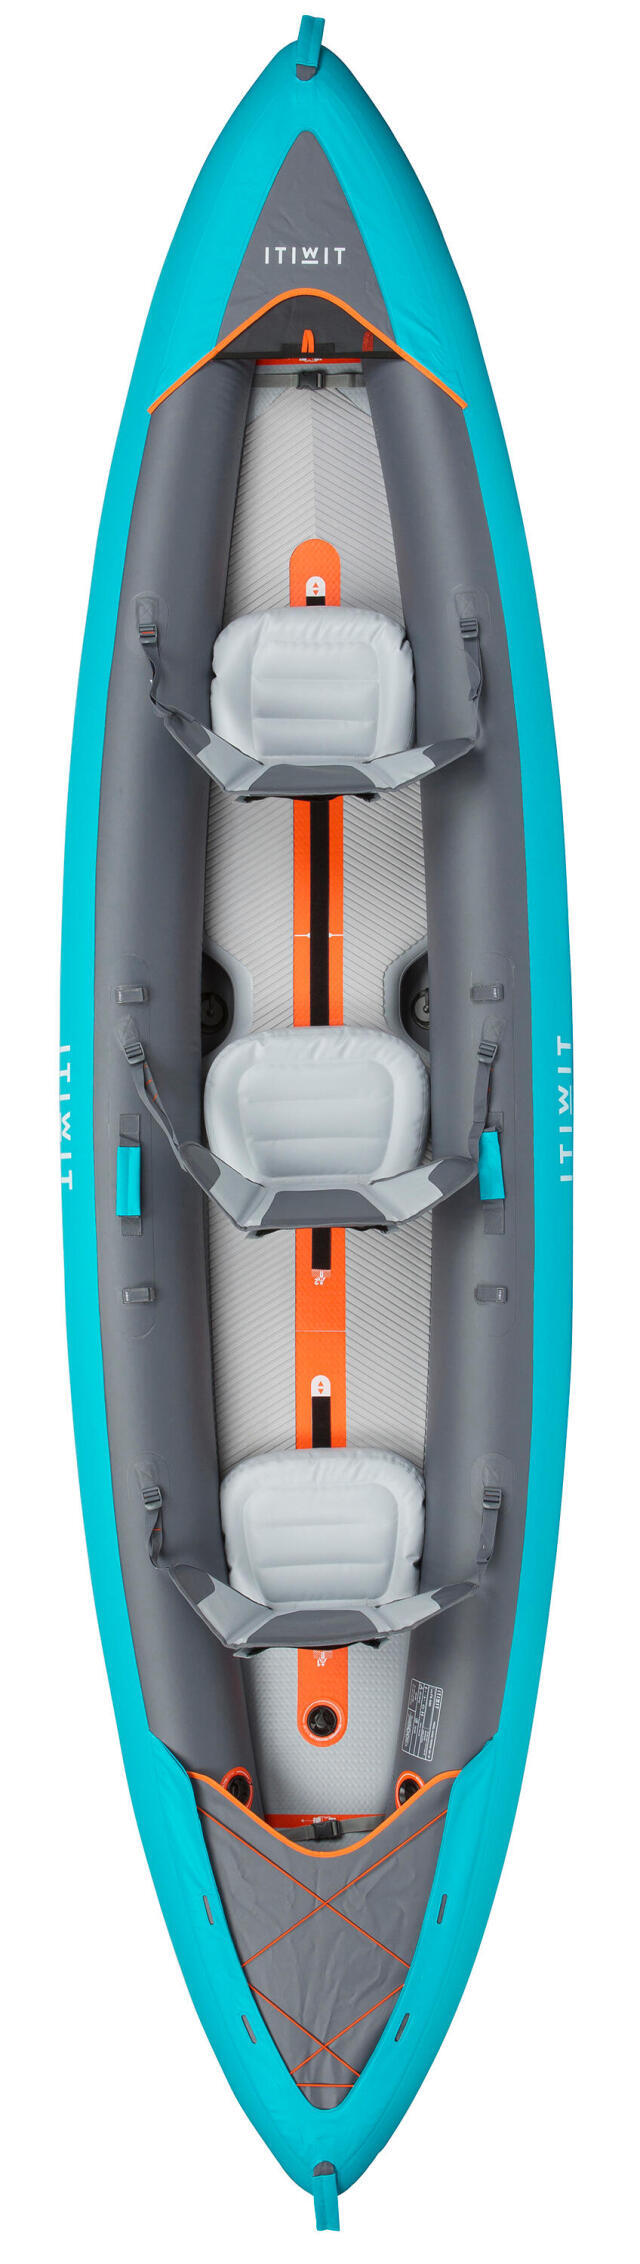 Itiwit Kayak Gonflable Fond Haute Pression Drop Stitch X100 3 Places Decathlonsav